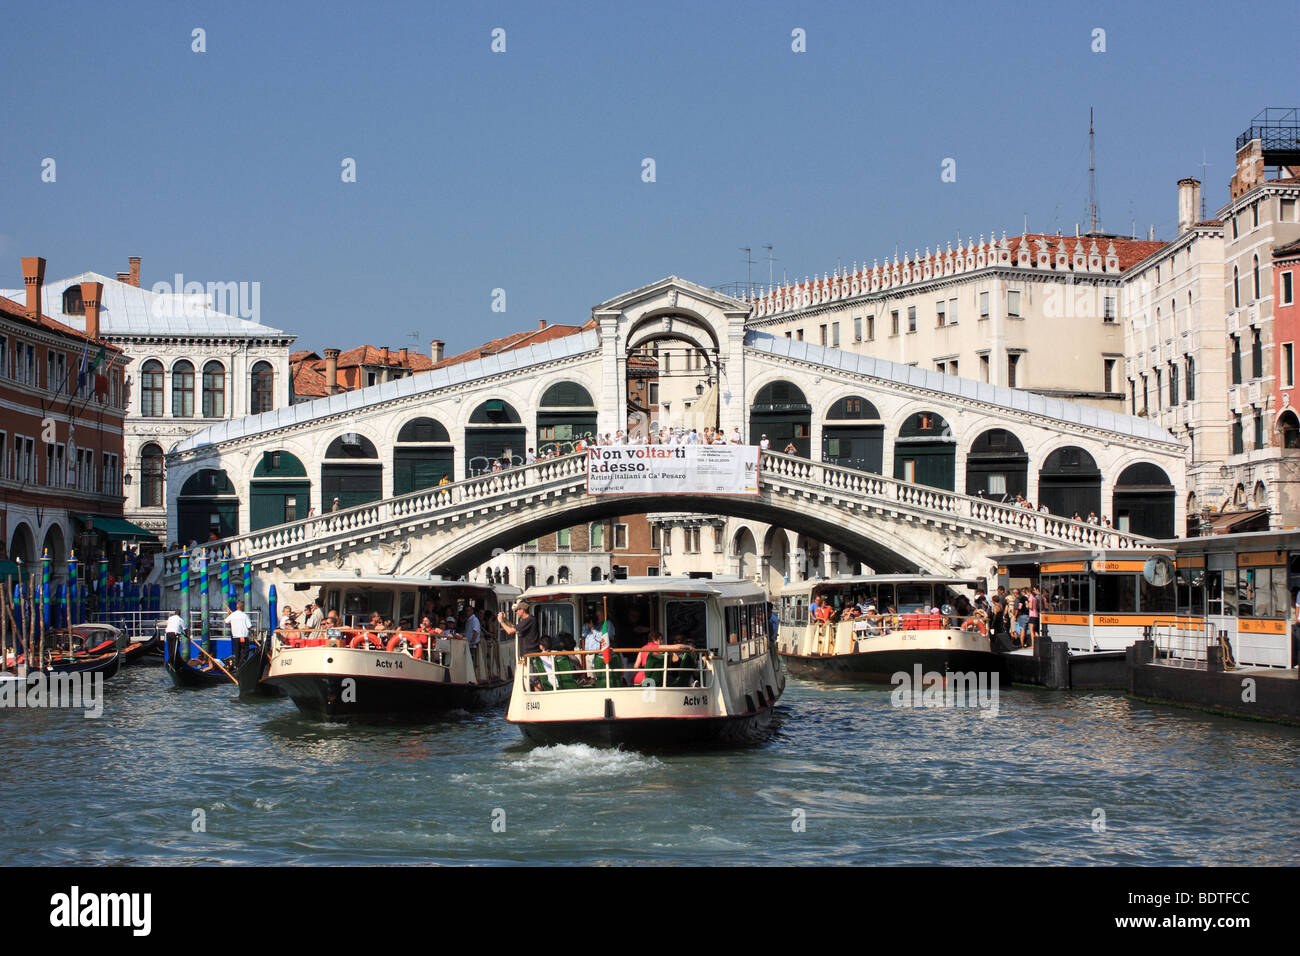 Crowded Vaporetti (water buses) traffic - Stock Image